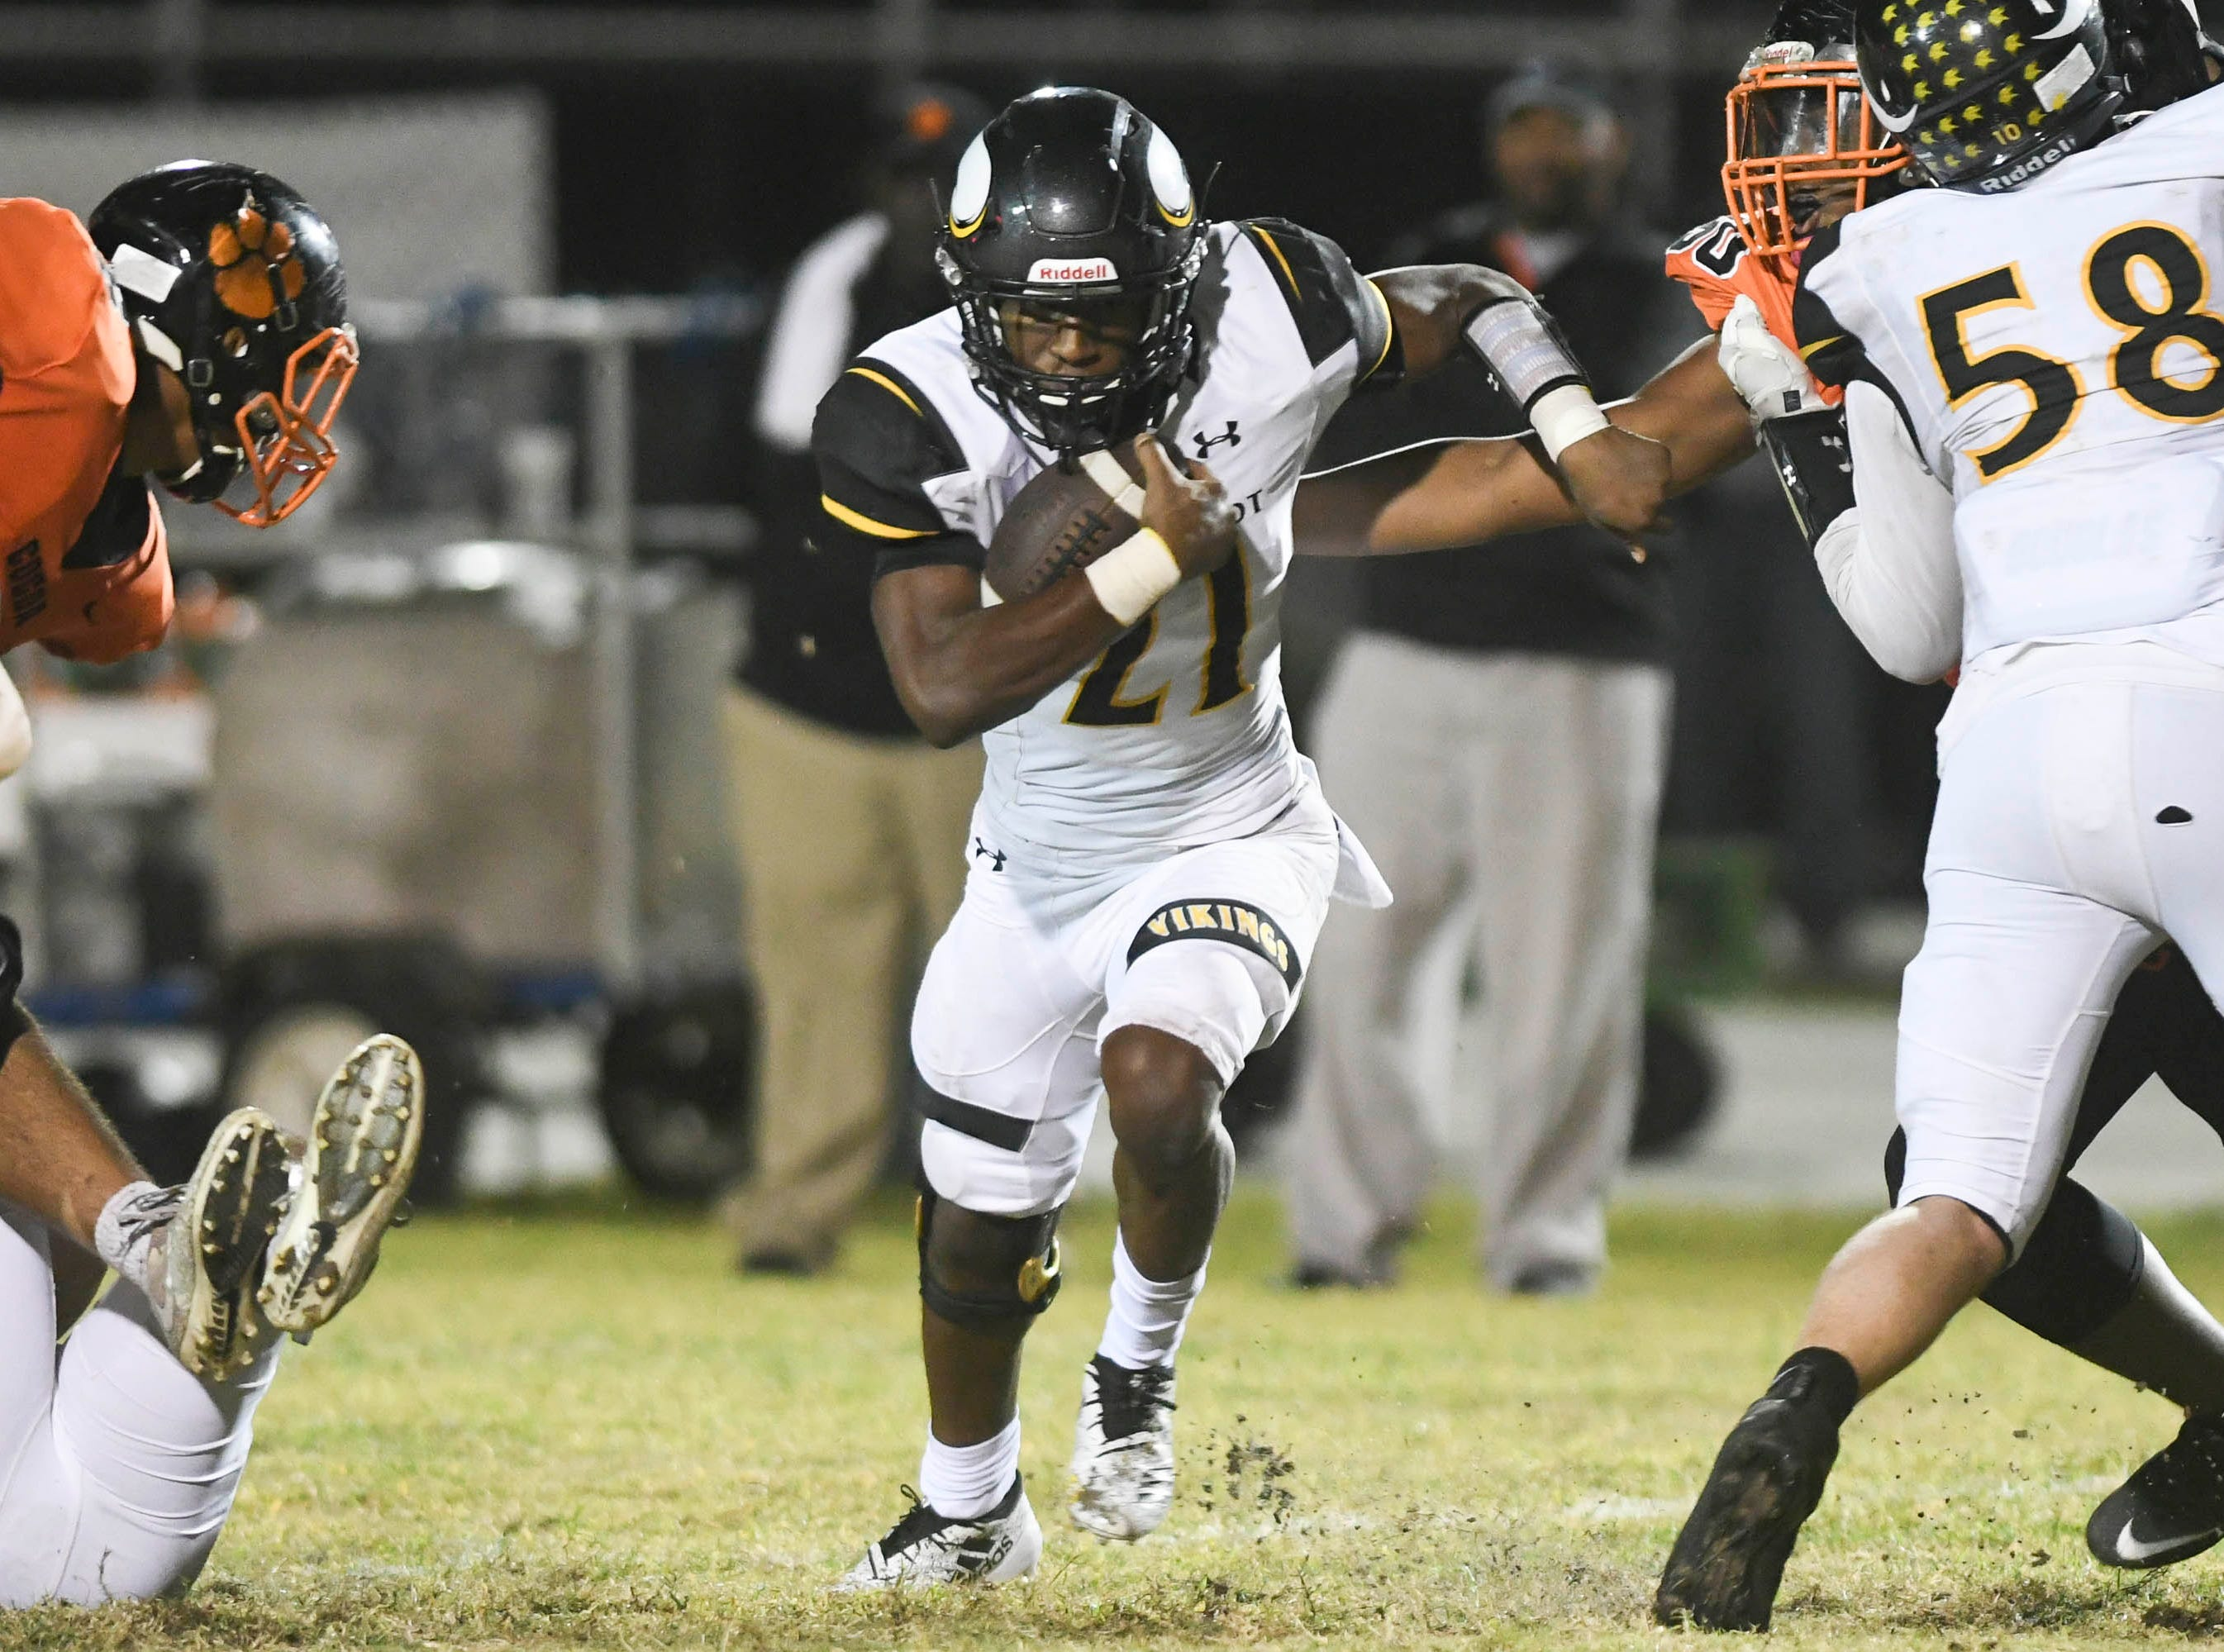 Terry Lindsey of Bishop Verot runs through a hole in the Cocoa defense during their game Friday.